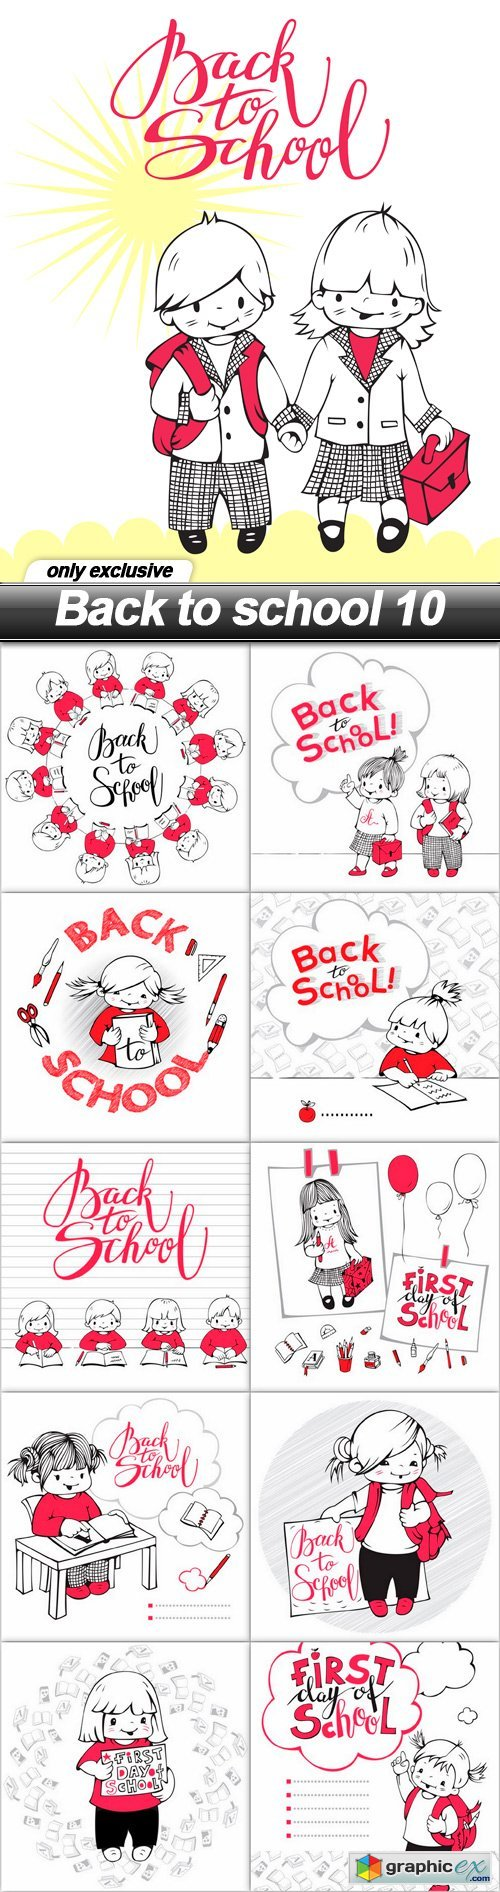 Back to school 10 - 11 EPS